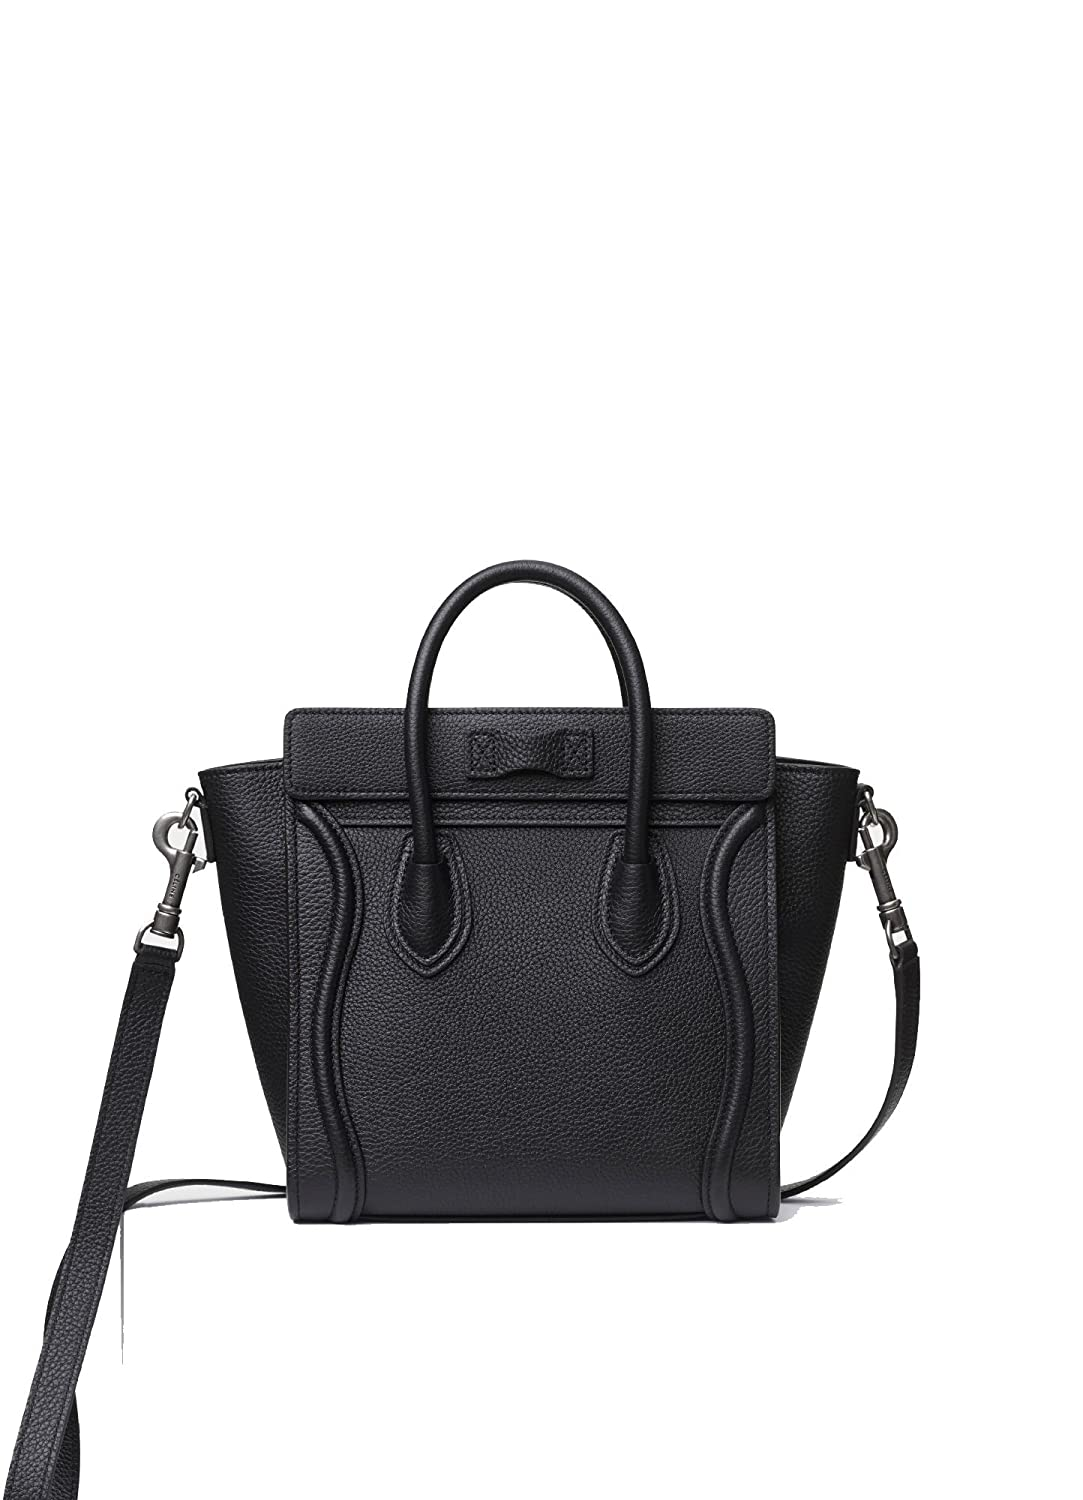 8a602d14d Amazon.com  celine medium luggage phanton bag in baby grained calfskin  (black)  Shoes